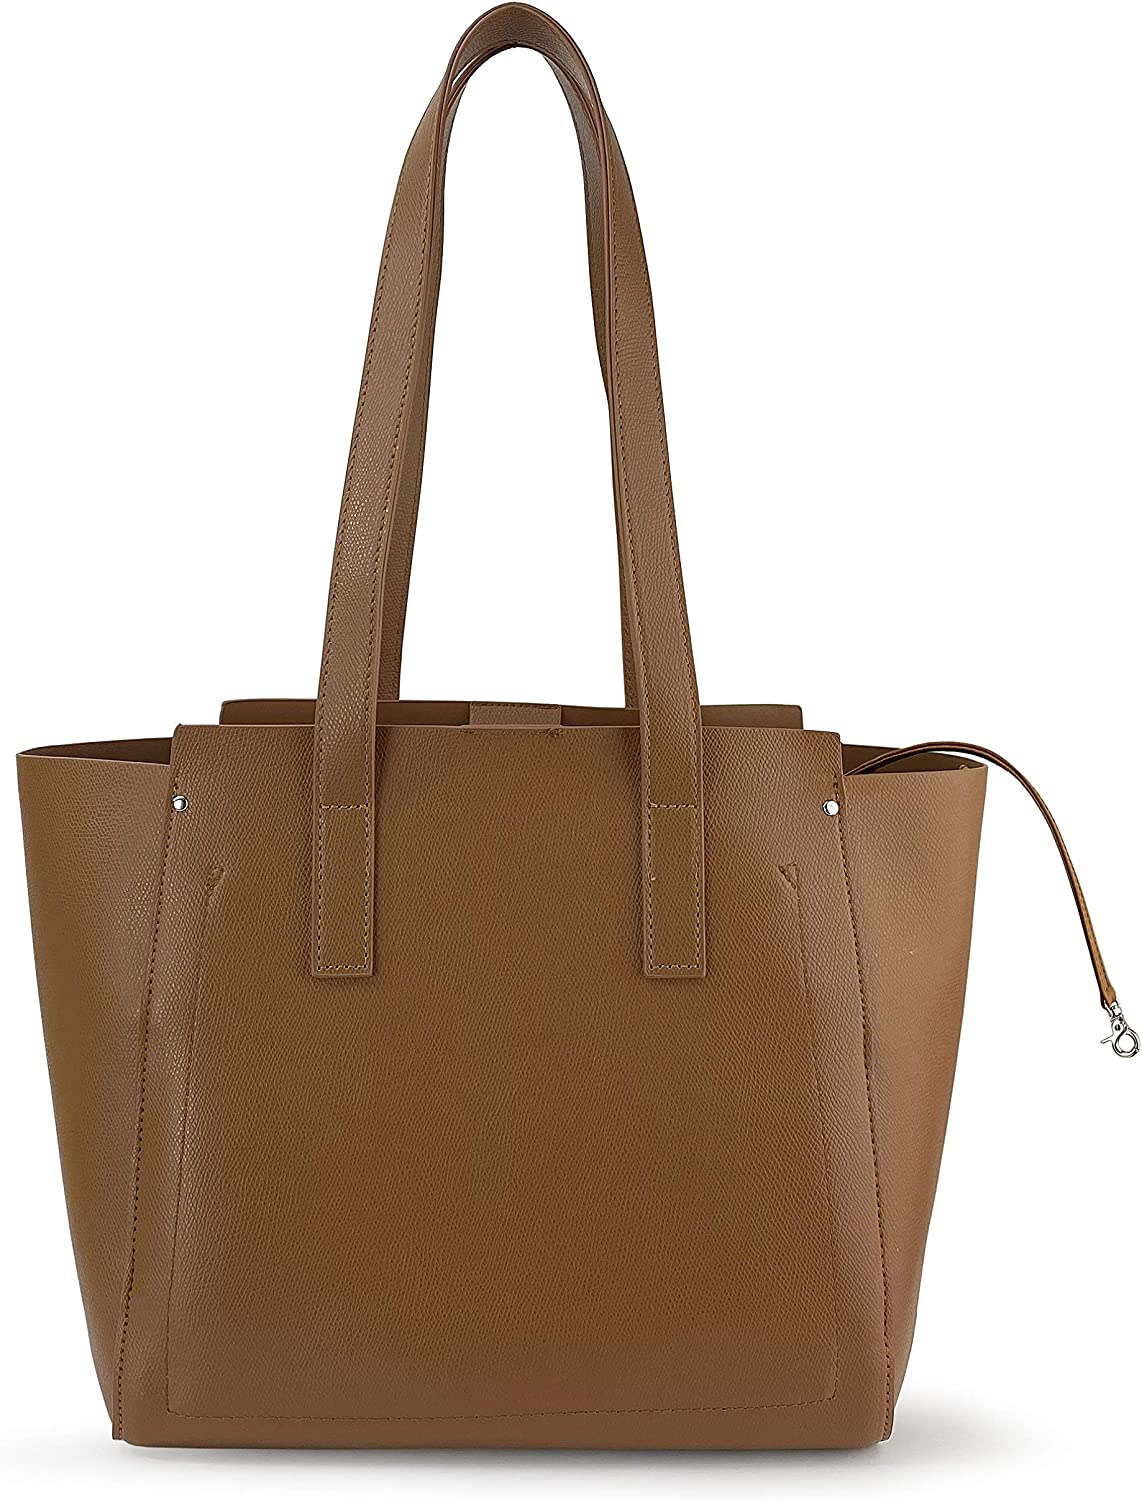 Women Tote Multiple Pockets Organized Shoulder Handbag for Work and Weekend, Office Lady Leather Bag